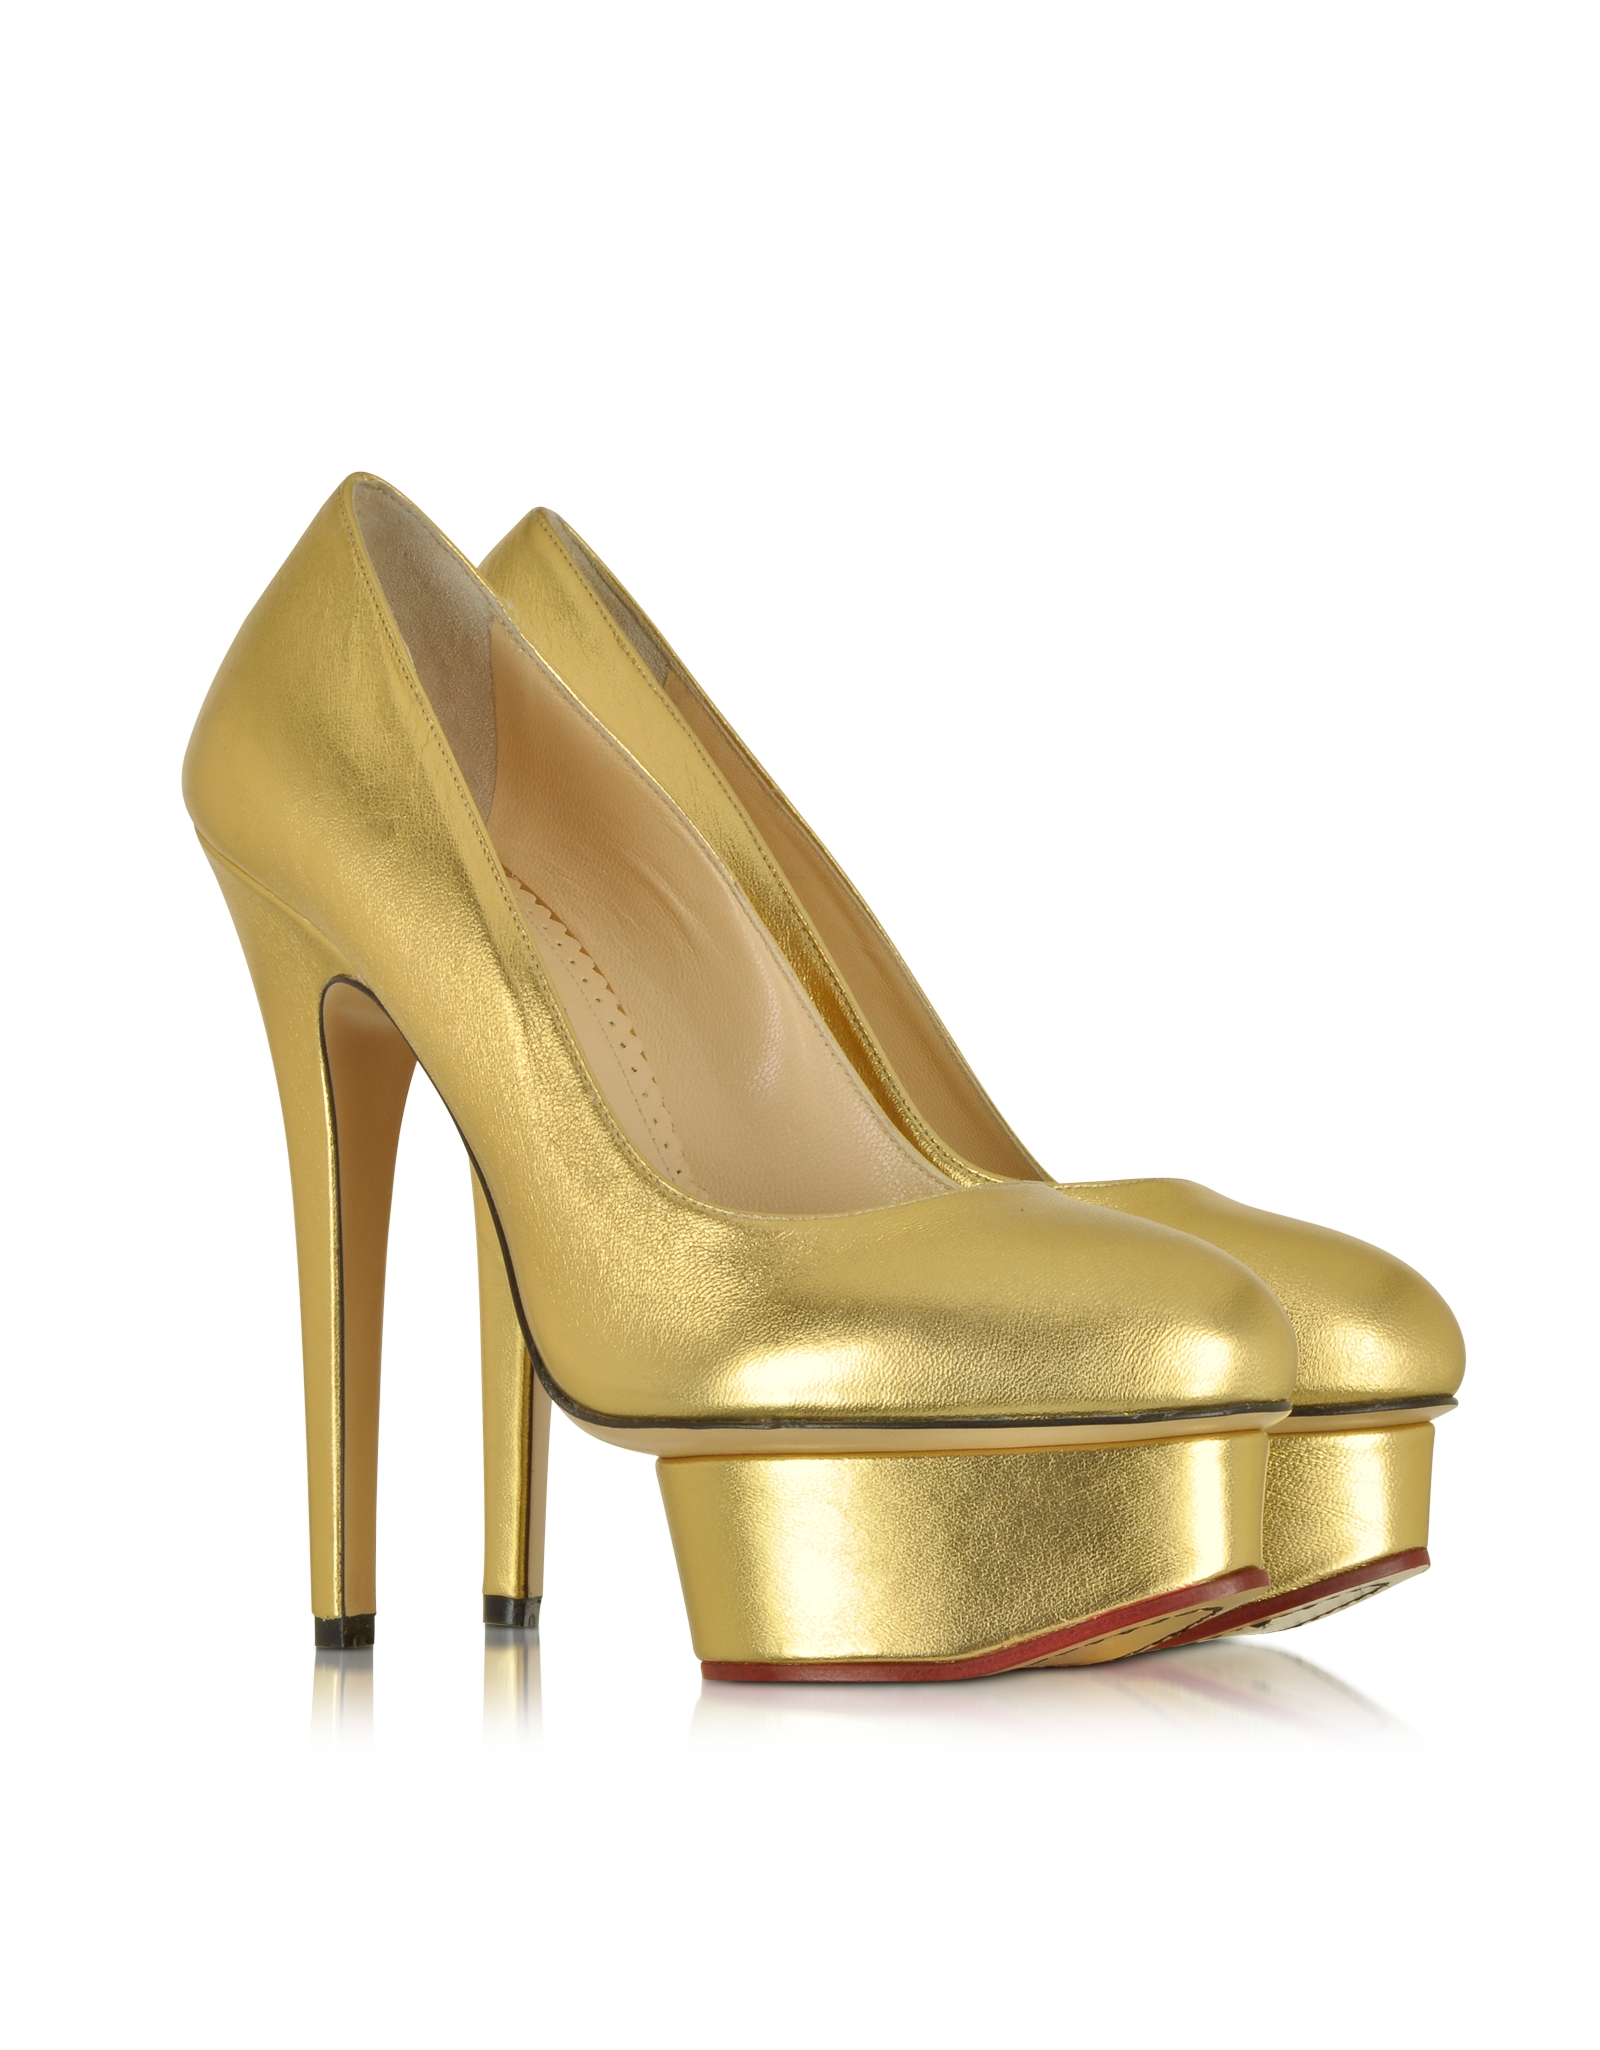 Charlotte Olympia Metallic Dolly Pumps deals 2J5ZGJbD